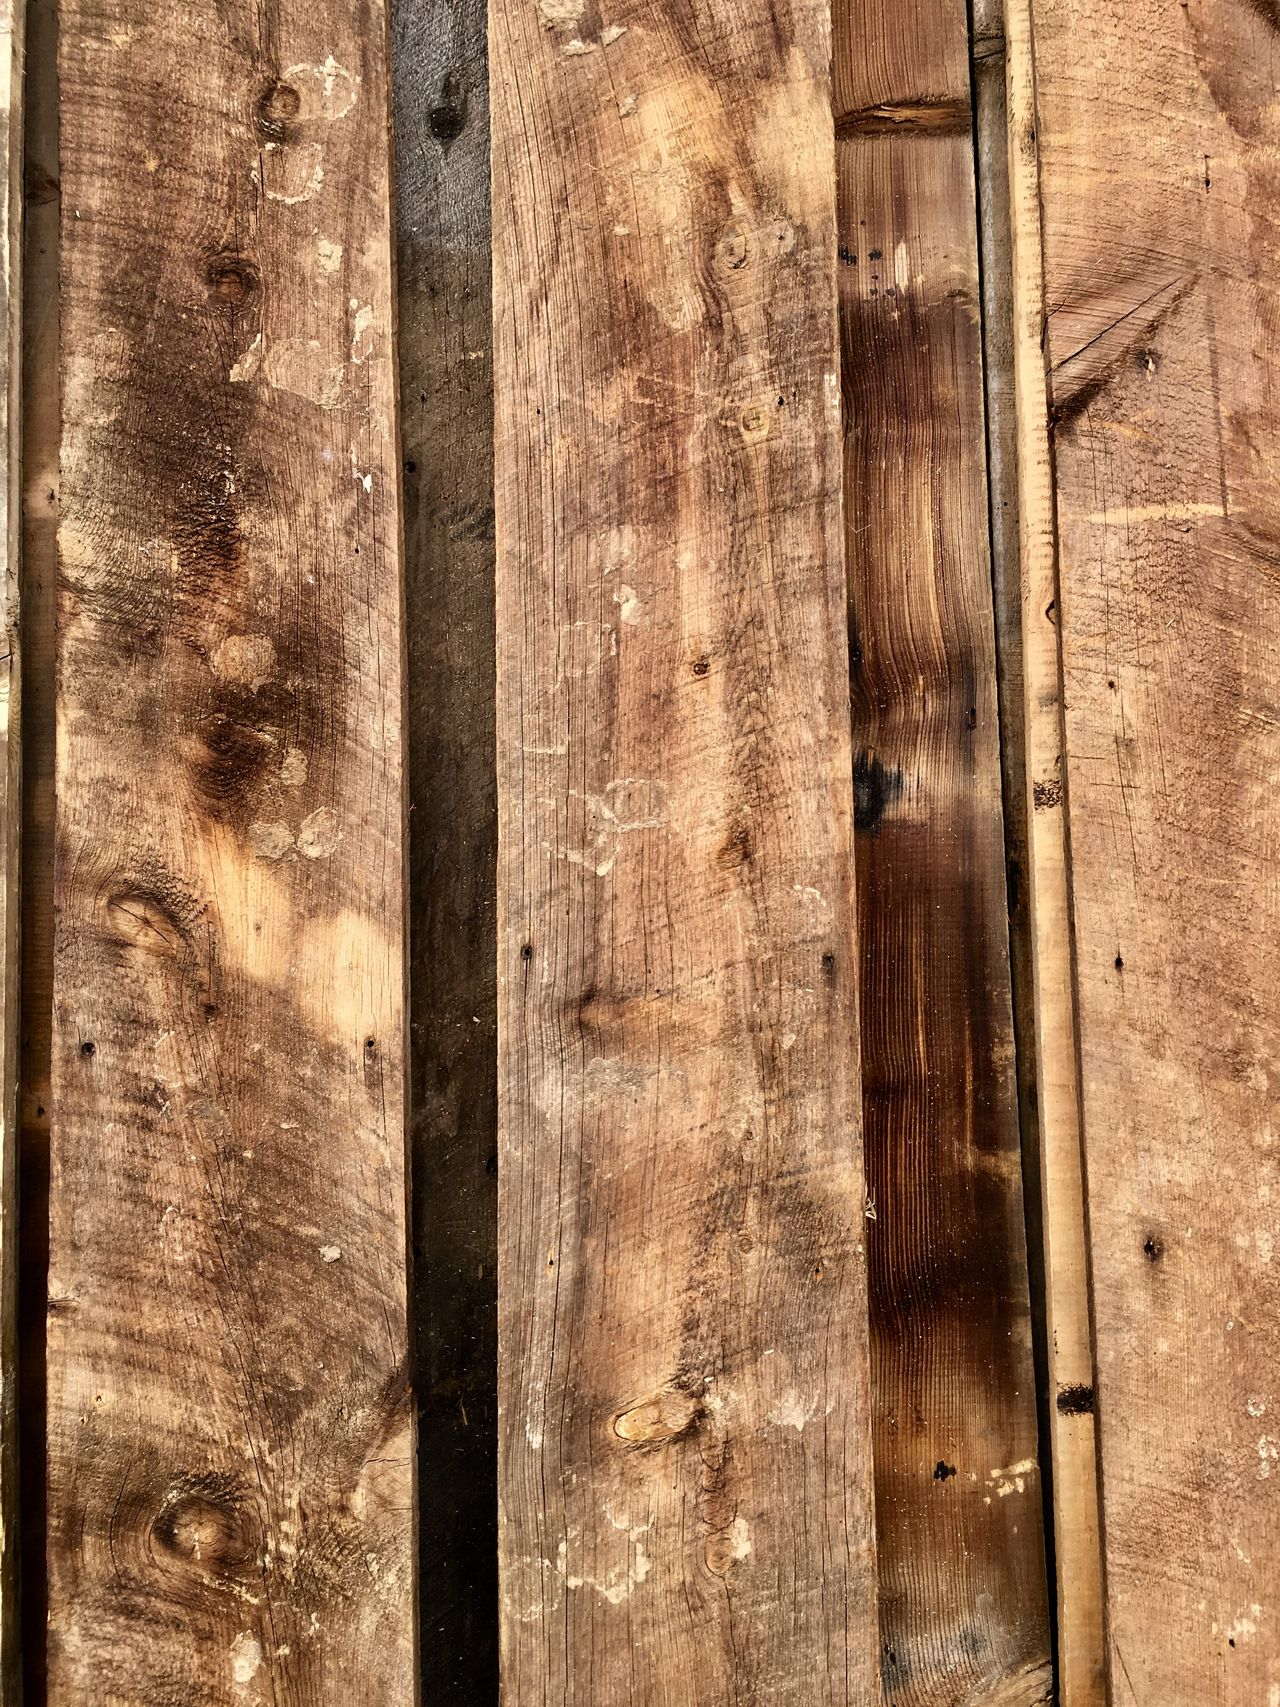 Architecture Backgrounds Brown Close-up Day Full Frame Hardwood Hardwood Floor No People Outdoors Pattern Rustic Textured  Timber Weathered Wood - Material Wood Grain